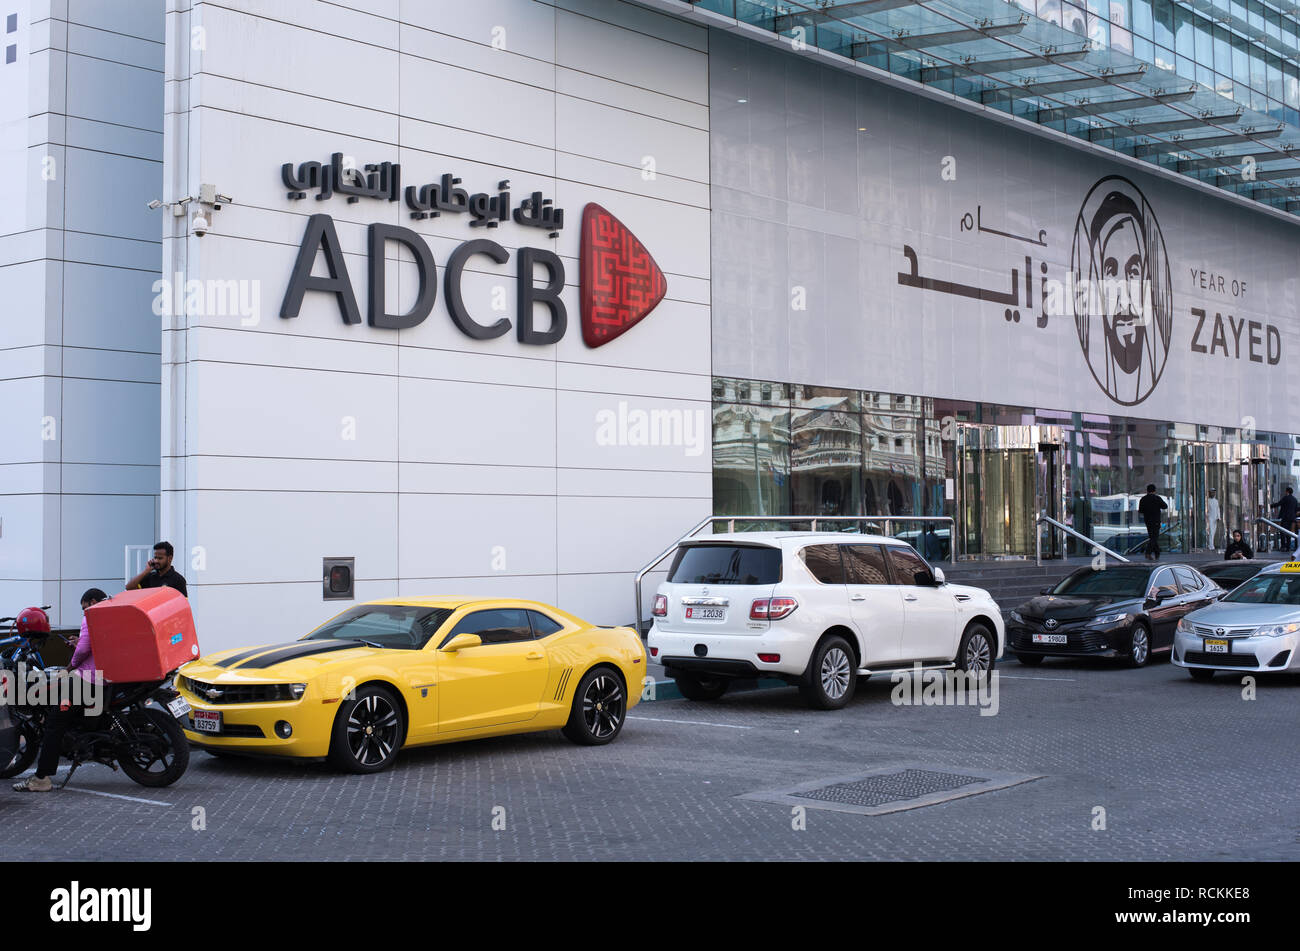 Exterior view of Abu Dhabi Commercial Bank (ADCB) Stock Photo